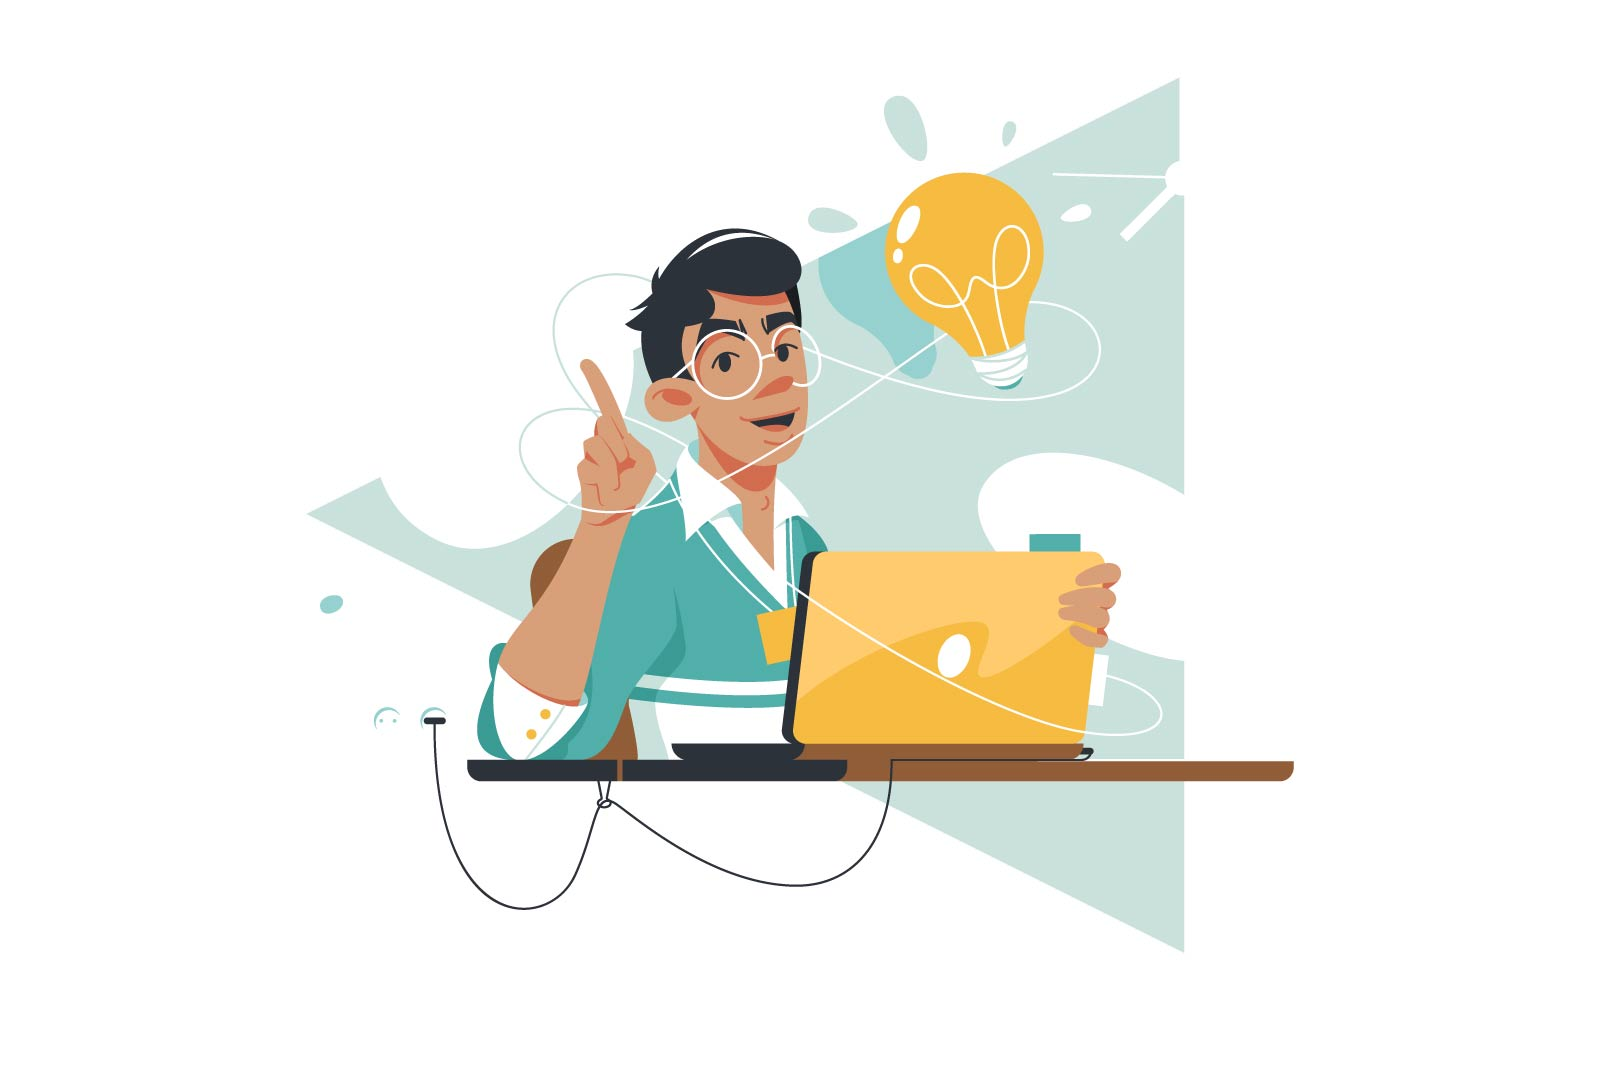 Guy happy with great idea vector illustration. Smart man have insight and discussing plan on laptop flat style. Startup, inspiration and creativity concept. Isolated on white background